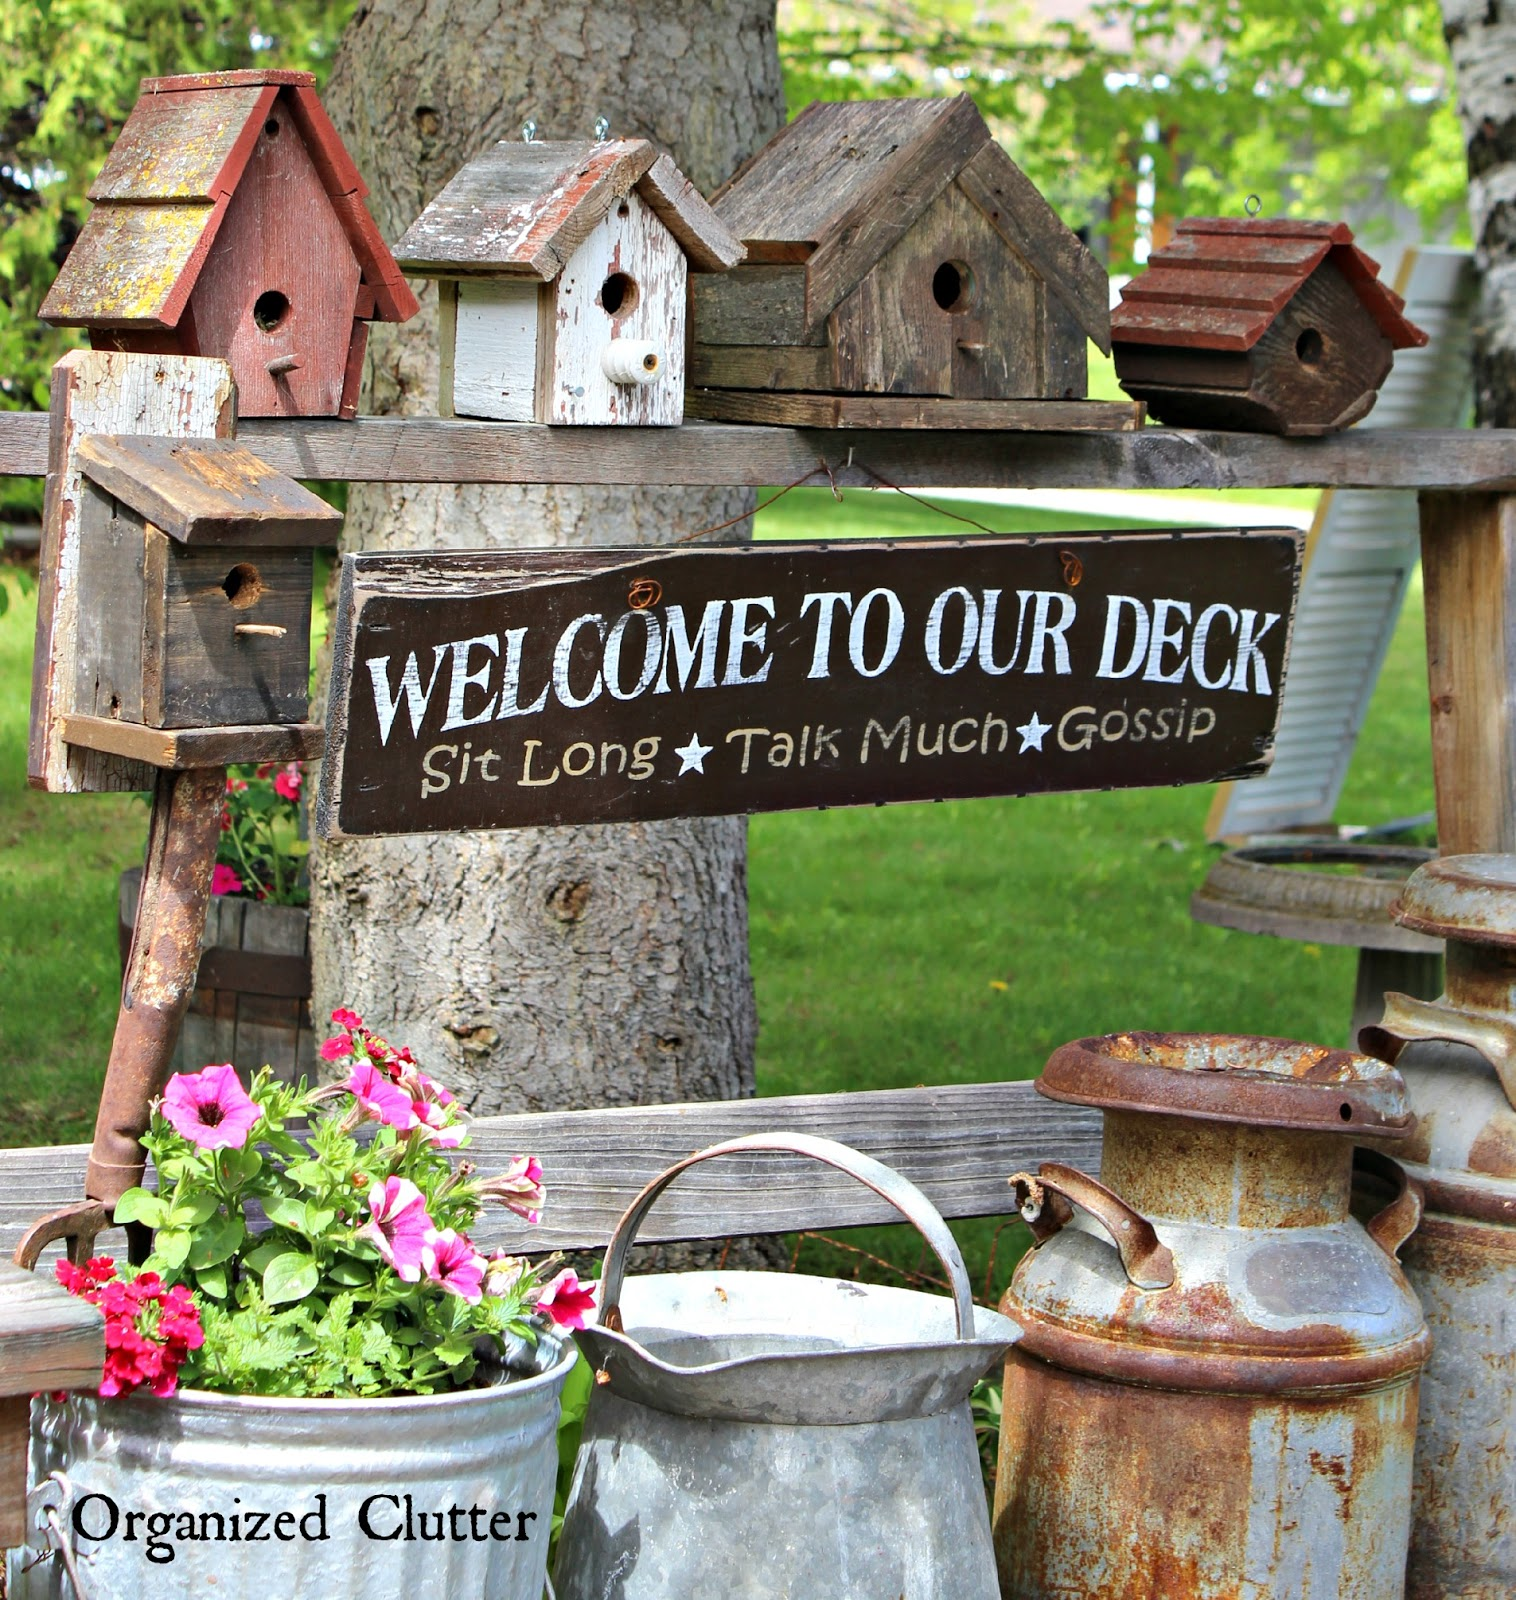 Rustic Home Furnishings And Mexican Garden Decorations By: Decorating The Deck With Rustic Birdhouses